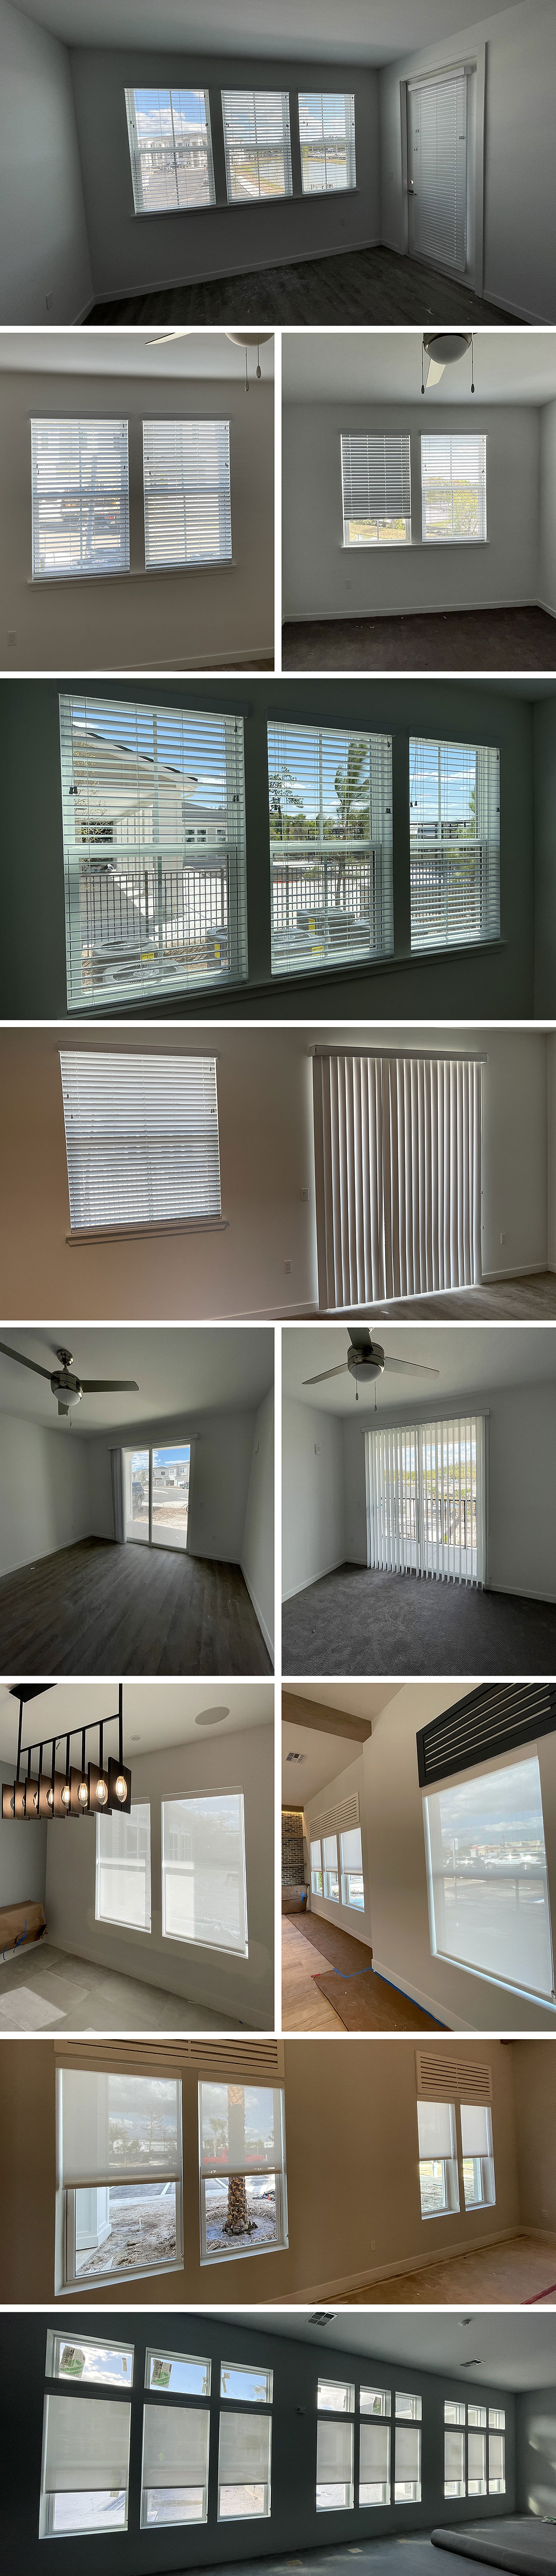 residential-community-tampa-window-blinds-vertical-blinds-faux-roller-shades.jpg